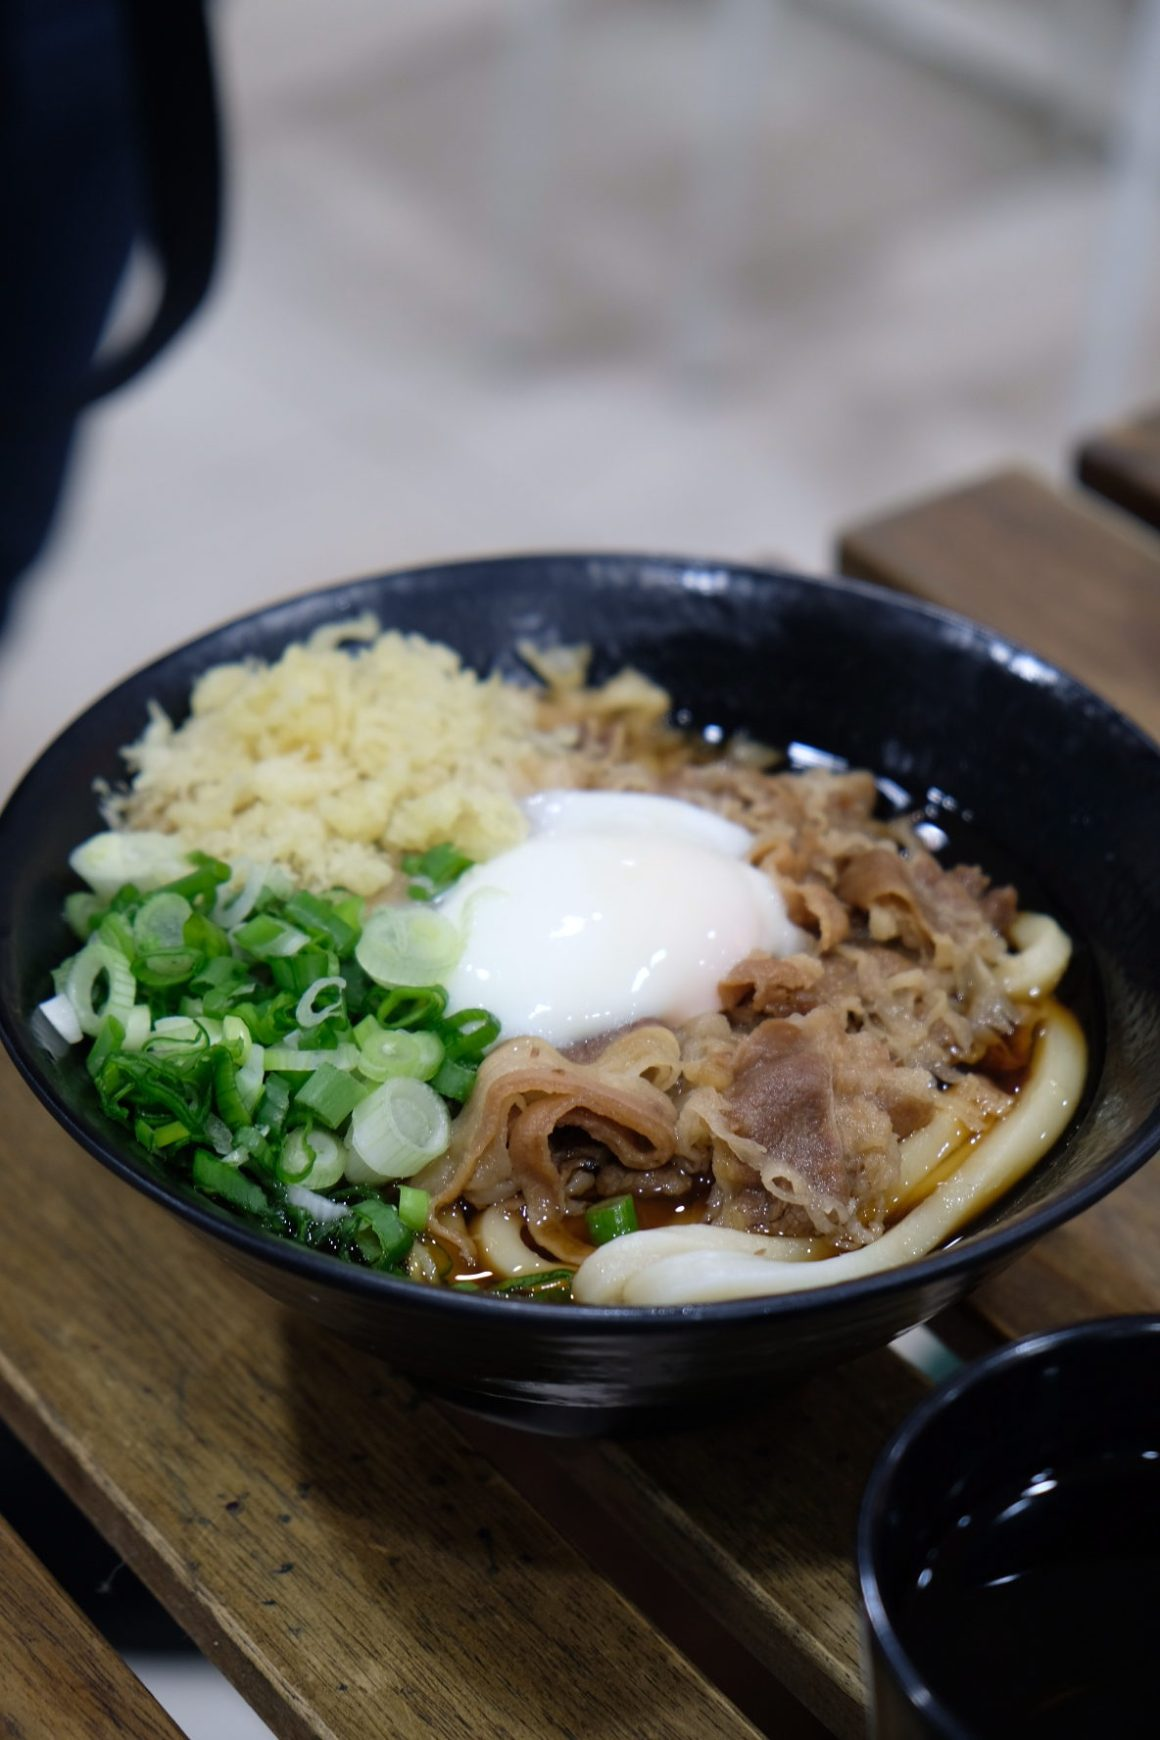 2019 Top 5 Udon At Tamoya Udon Singapore - Sanuki Beef Udon